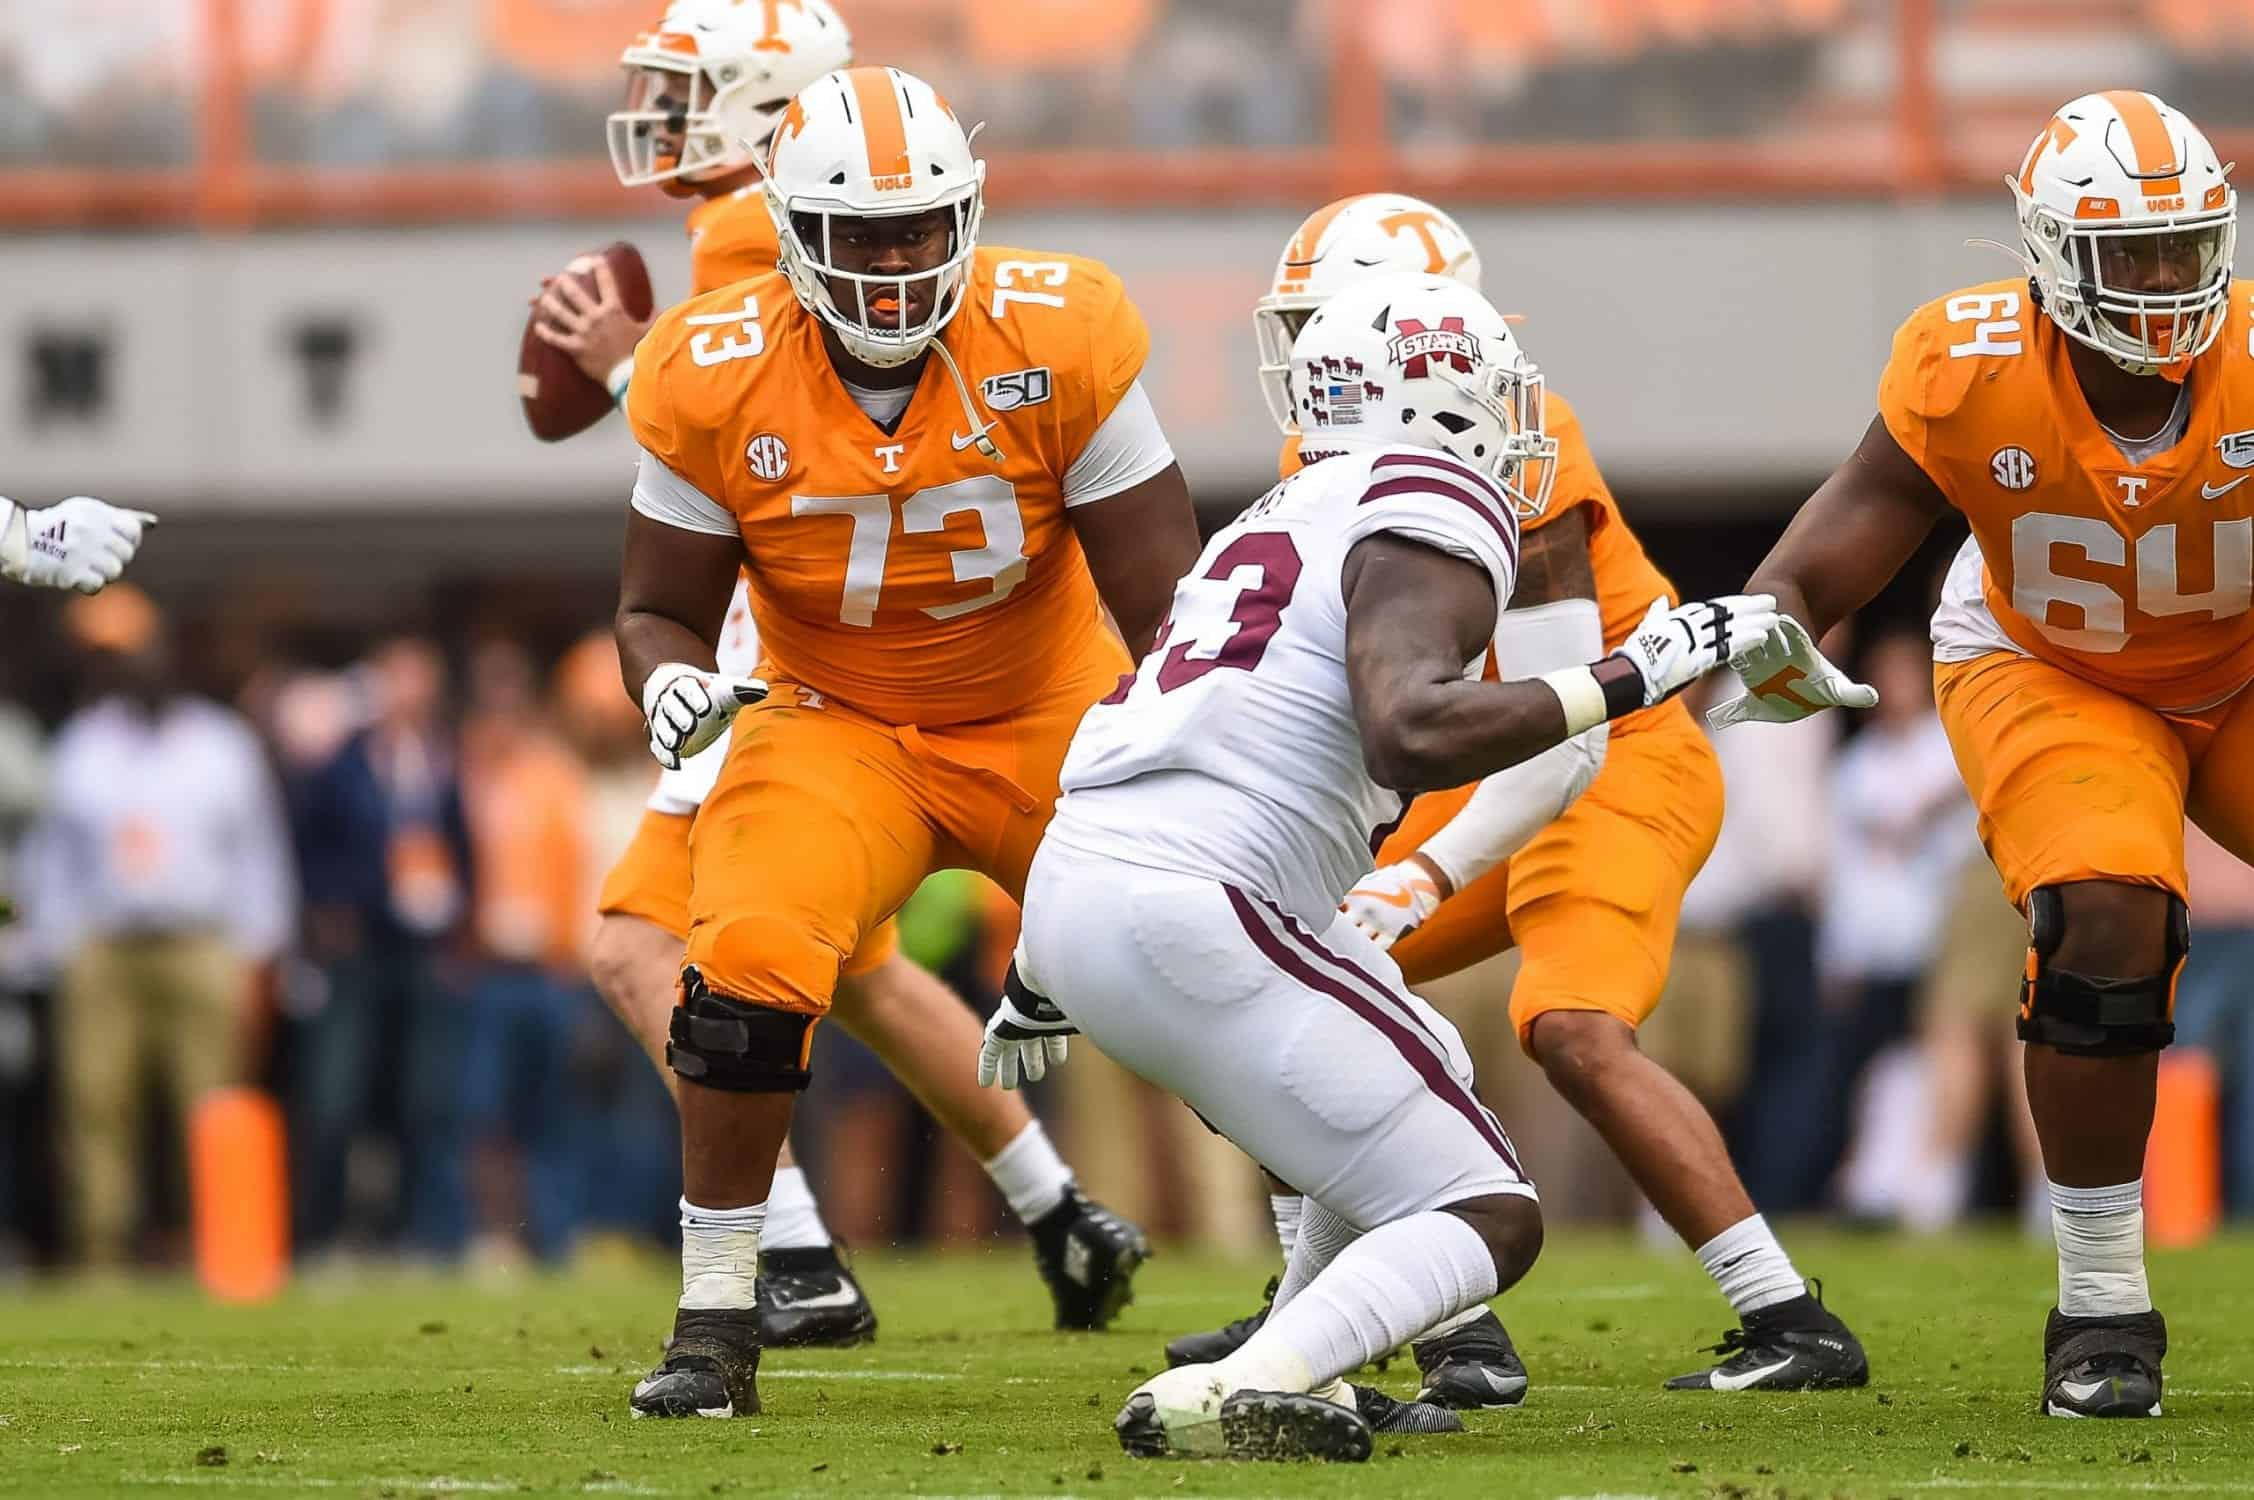 Top offensive lineman to know for the 2021 NFL Draft